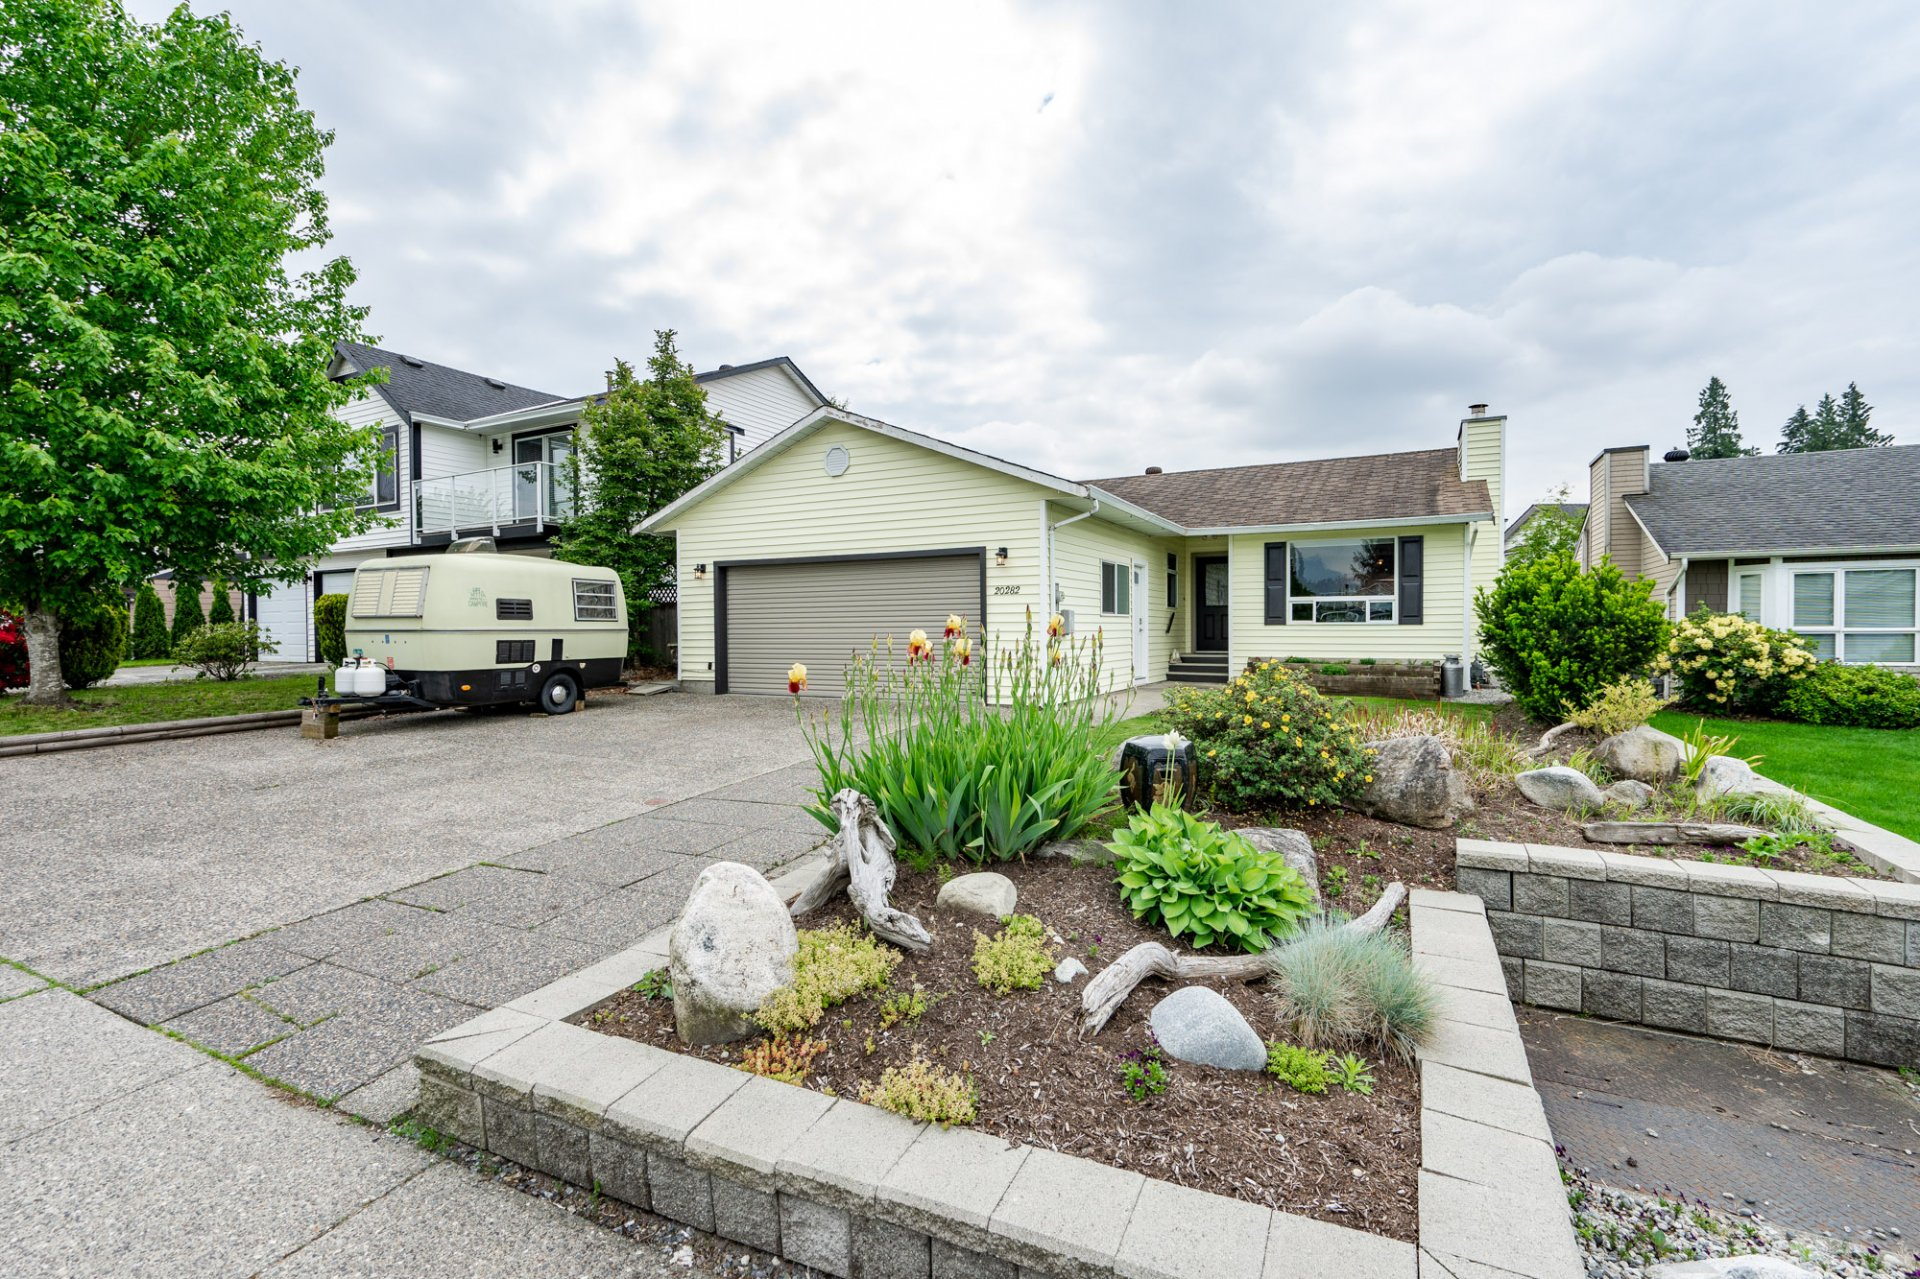 Welcome to 20282 Stanton Ave., Maple Ridge, BC!